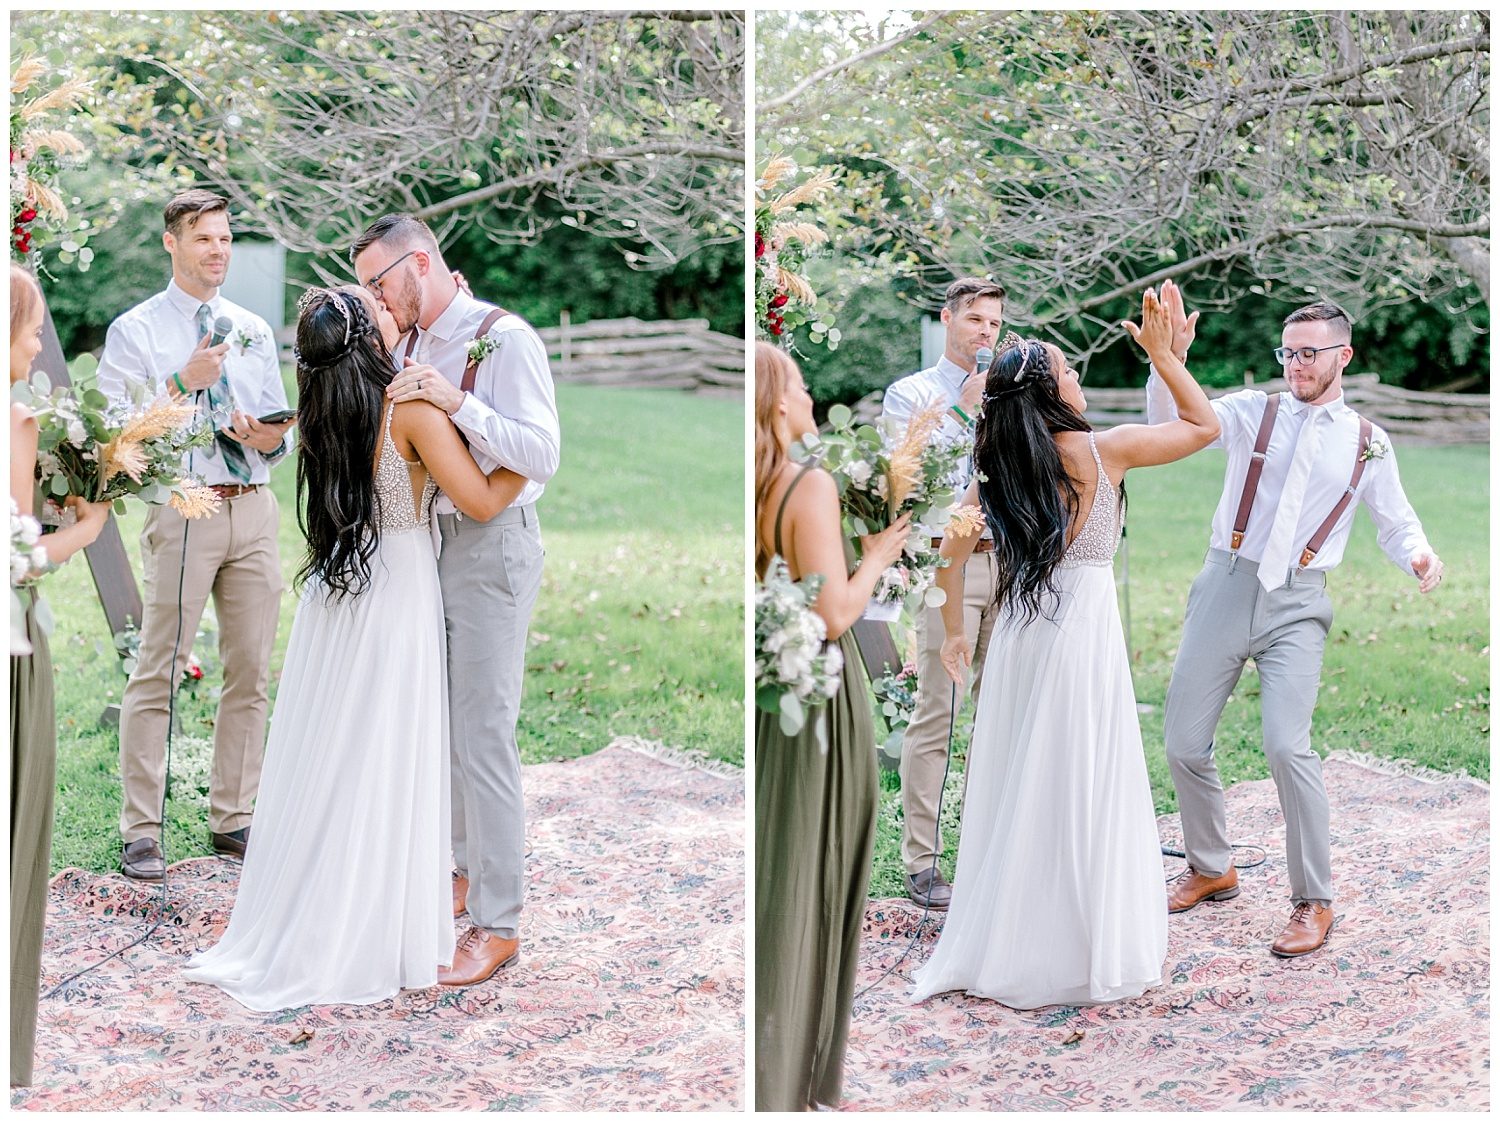 Olive green and white rustic barn wedding at burnside plantation in bethlehem pennsylvania by PA based destination wedding and lifestyle photographer Lytle photography (46).jpg